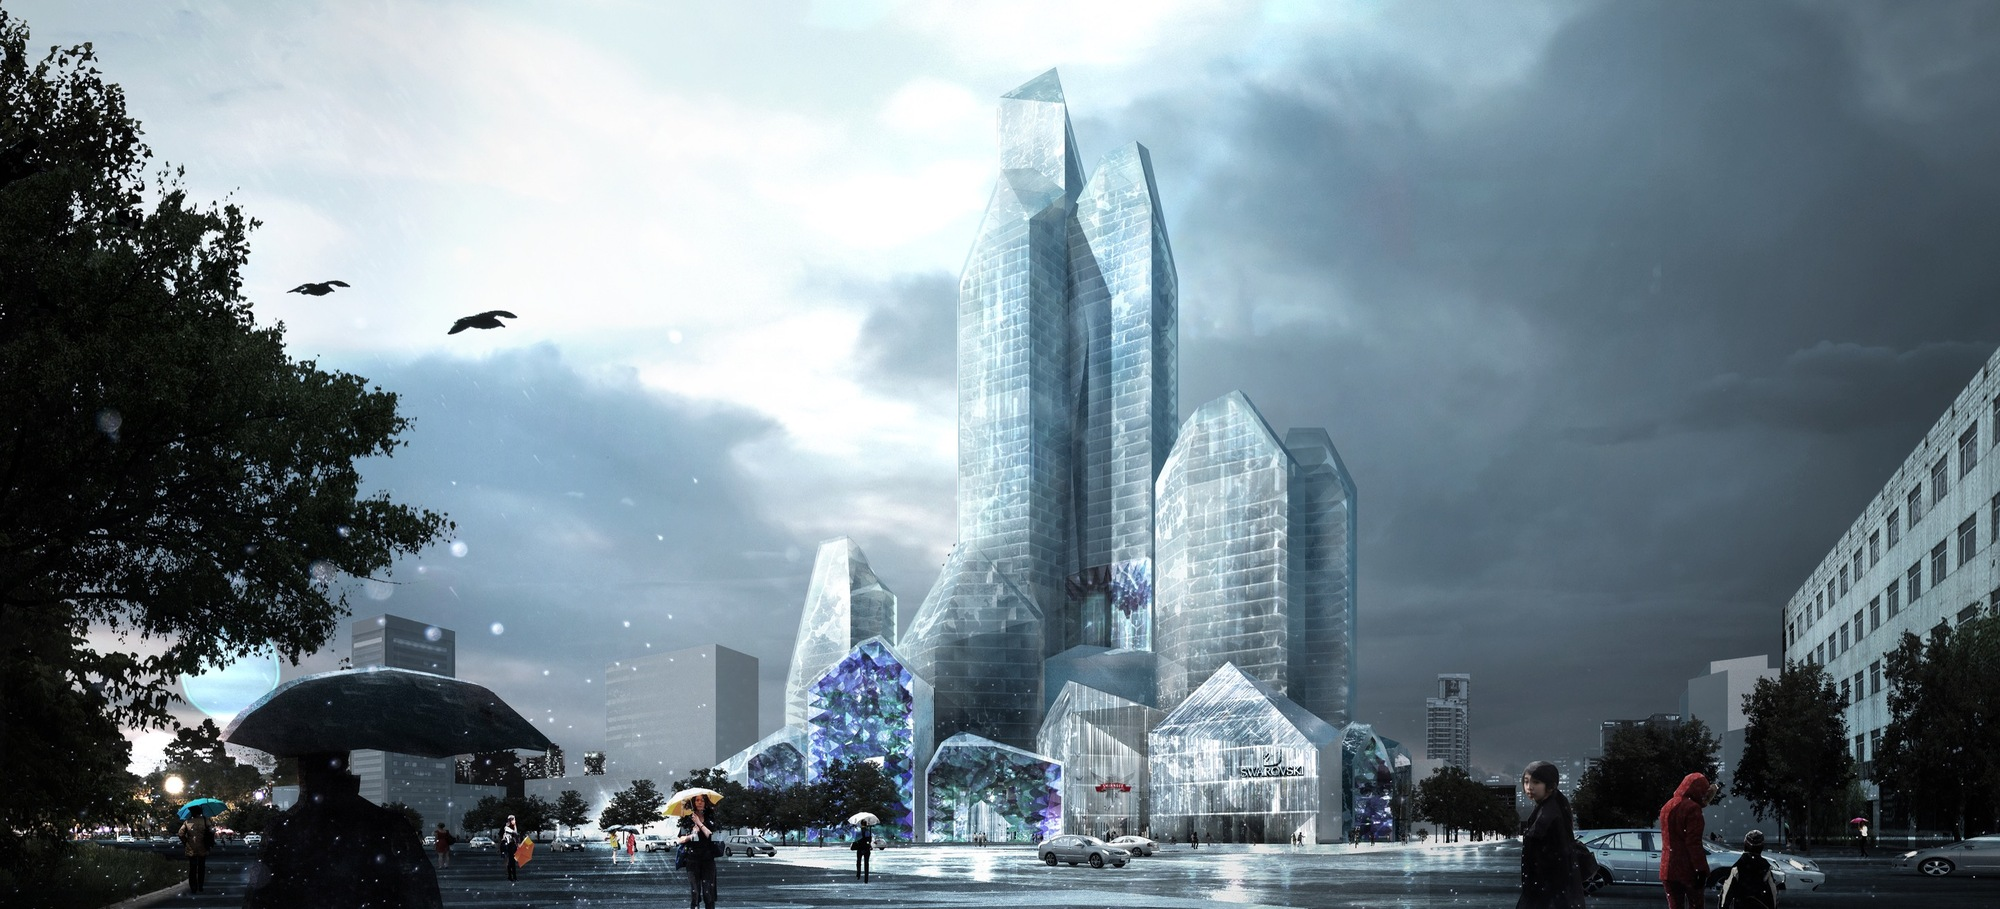 Harbin China Ice Building